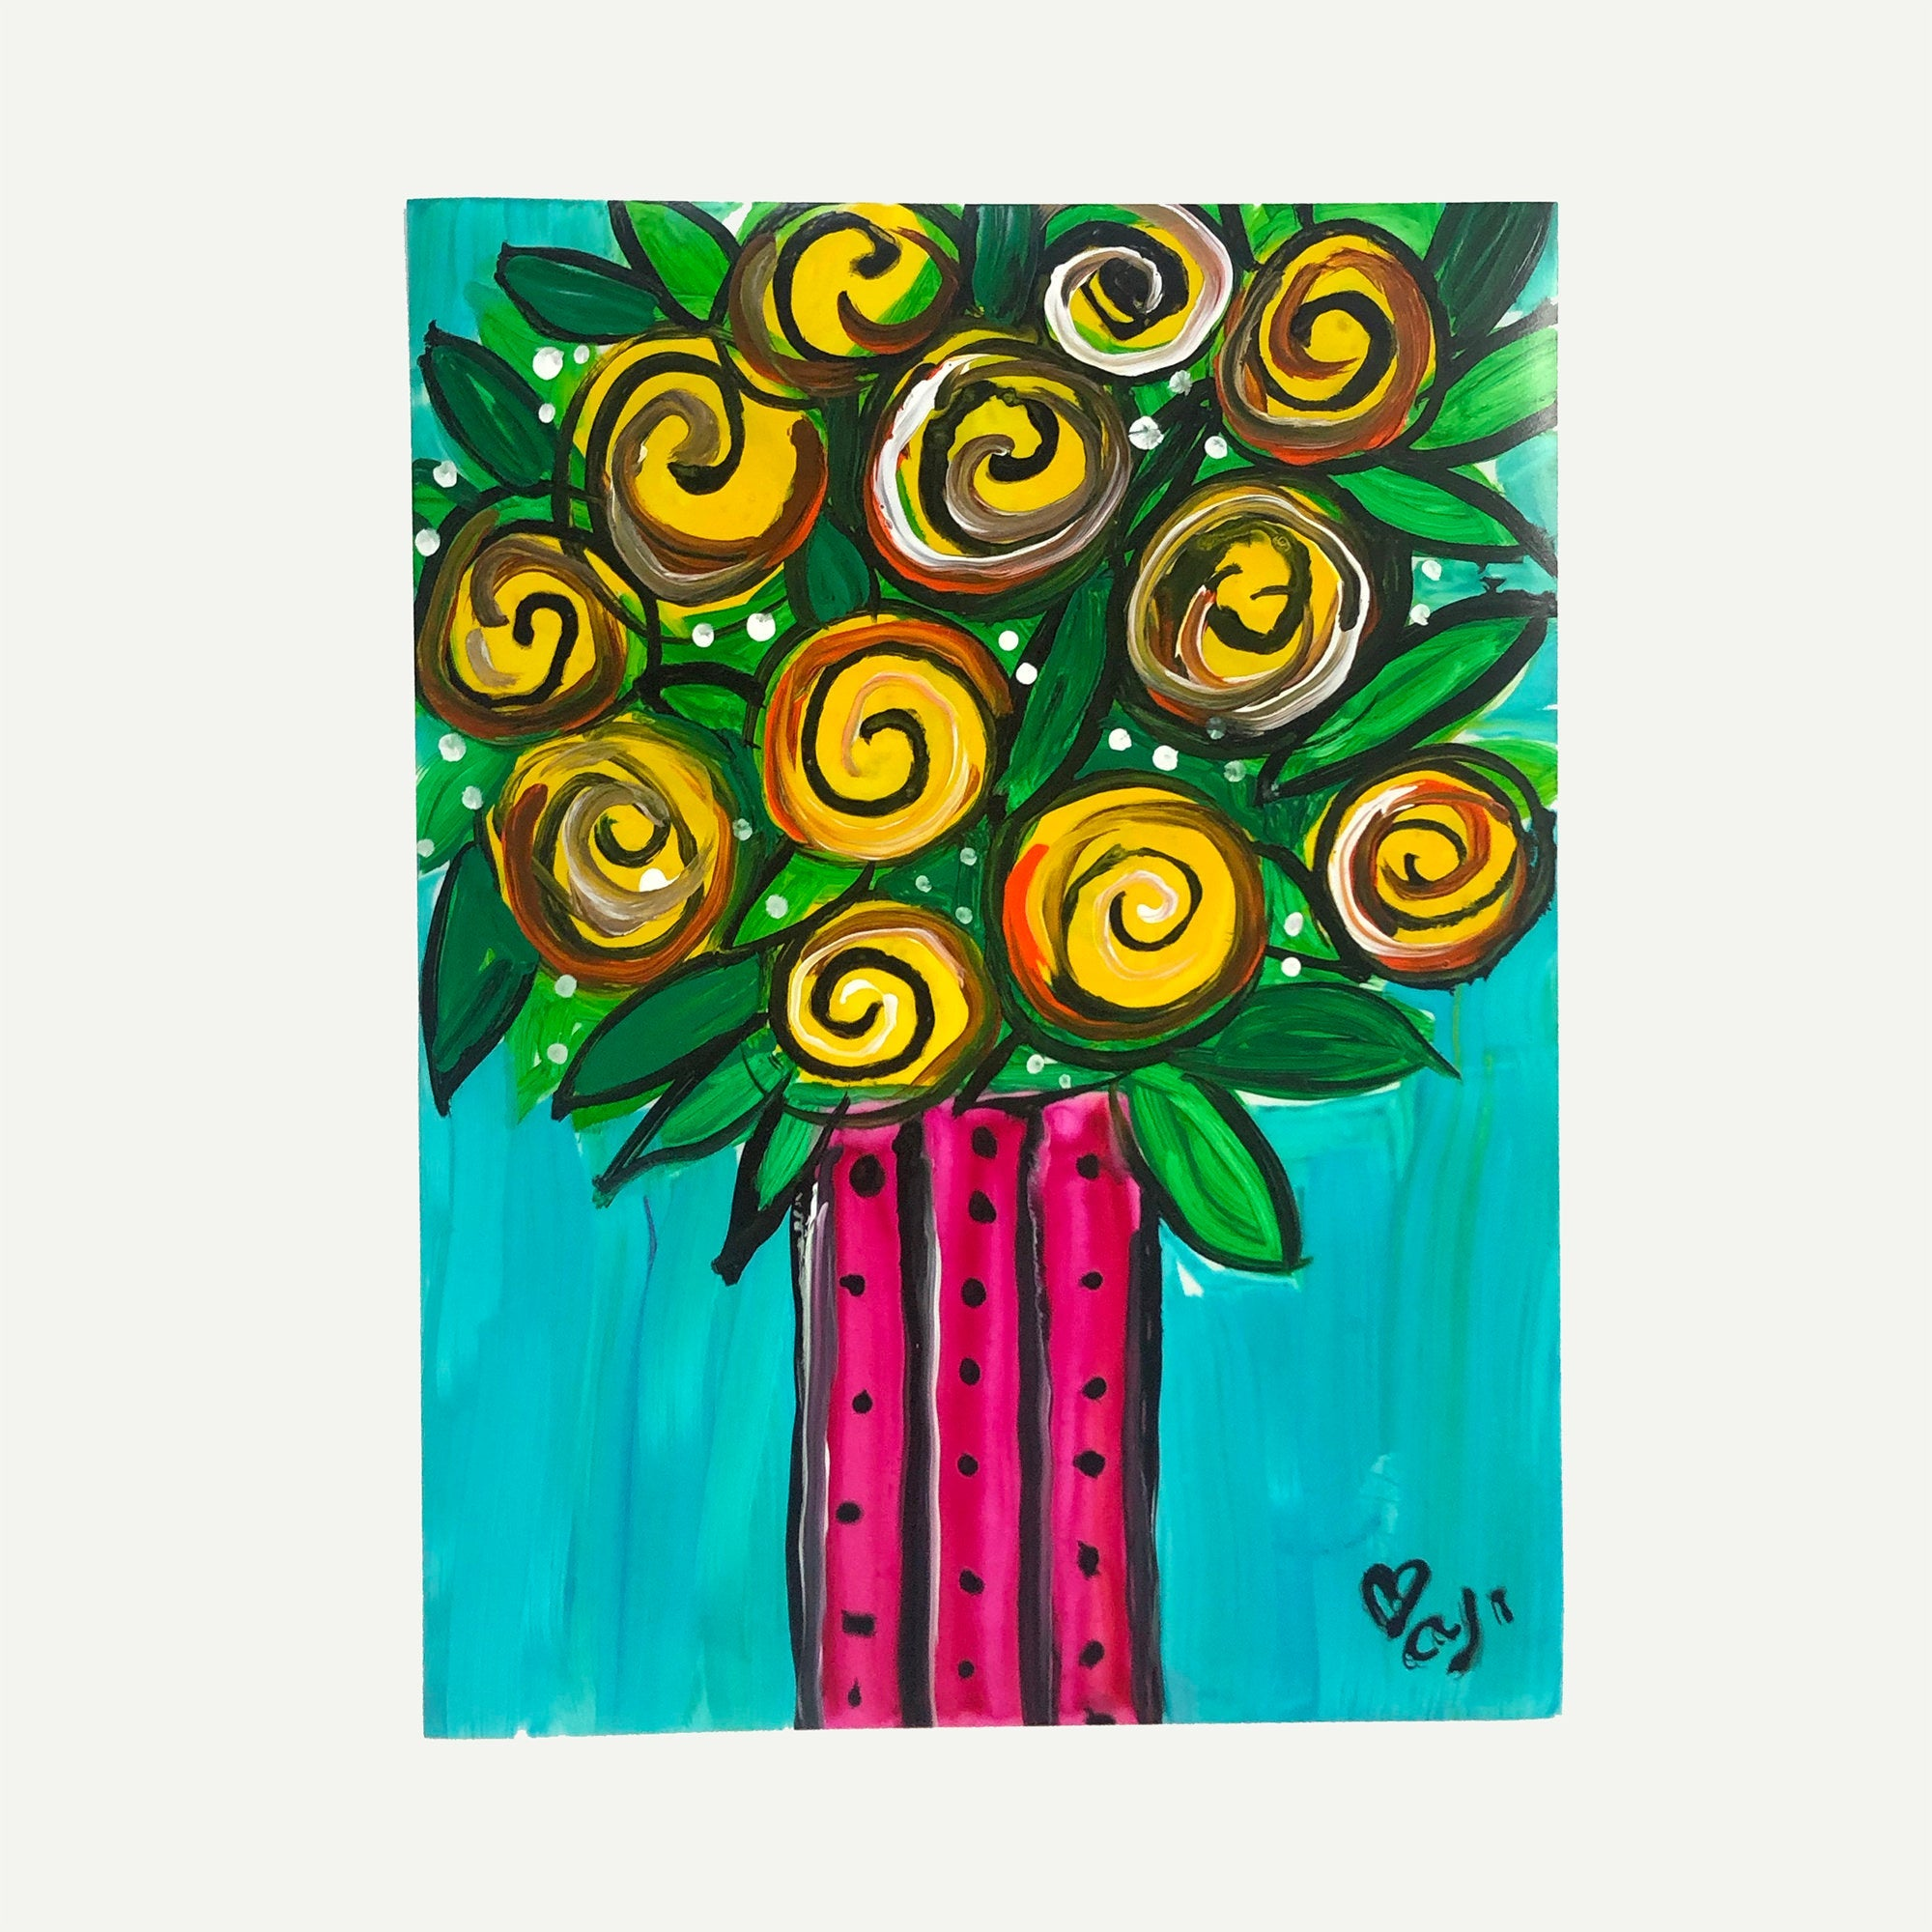 Yellow Roses Painting on Paper - 9 x 12 inches - Whimsical Flower Art on Yupo Paper - Unframed Artwork by Claudine Intner